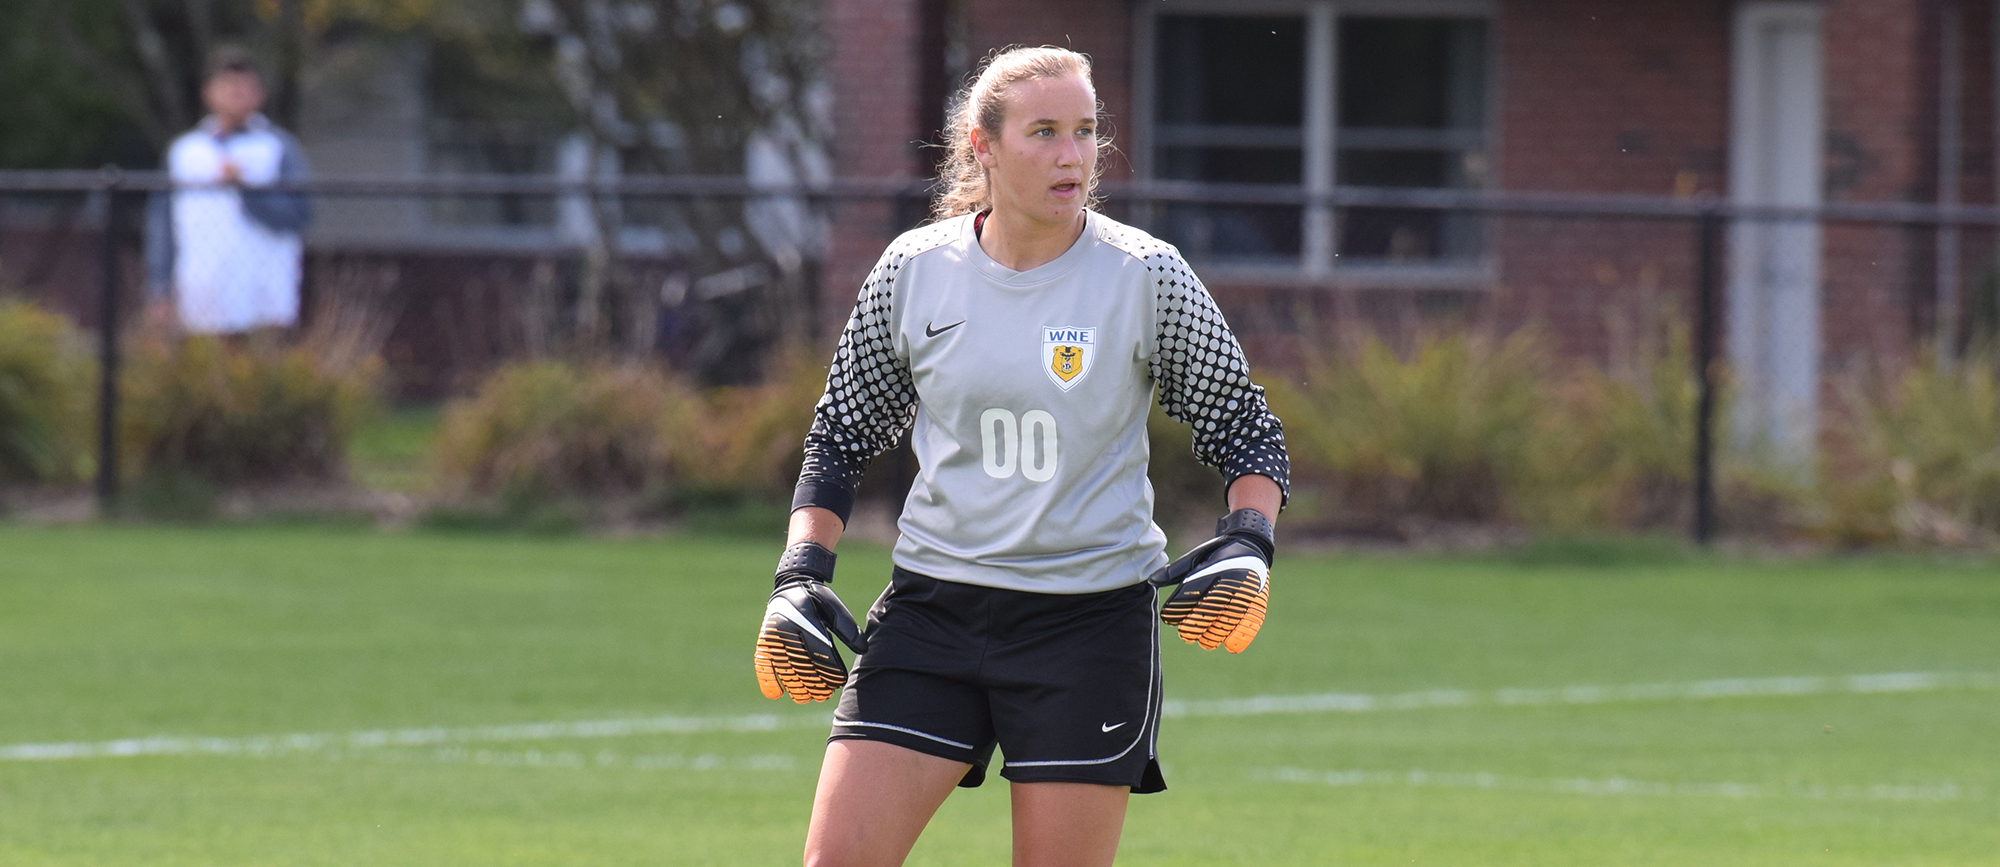 Sophomore goalkeeper Alex Lemekha registered her CCC-leading fourth shutout of the season in Saturday's 1-0 win over Salve Regina. (Photo by Rachael Margossian)